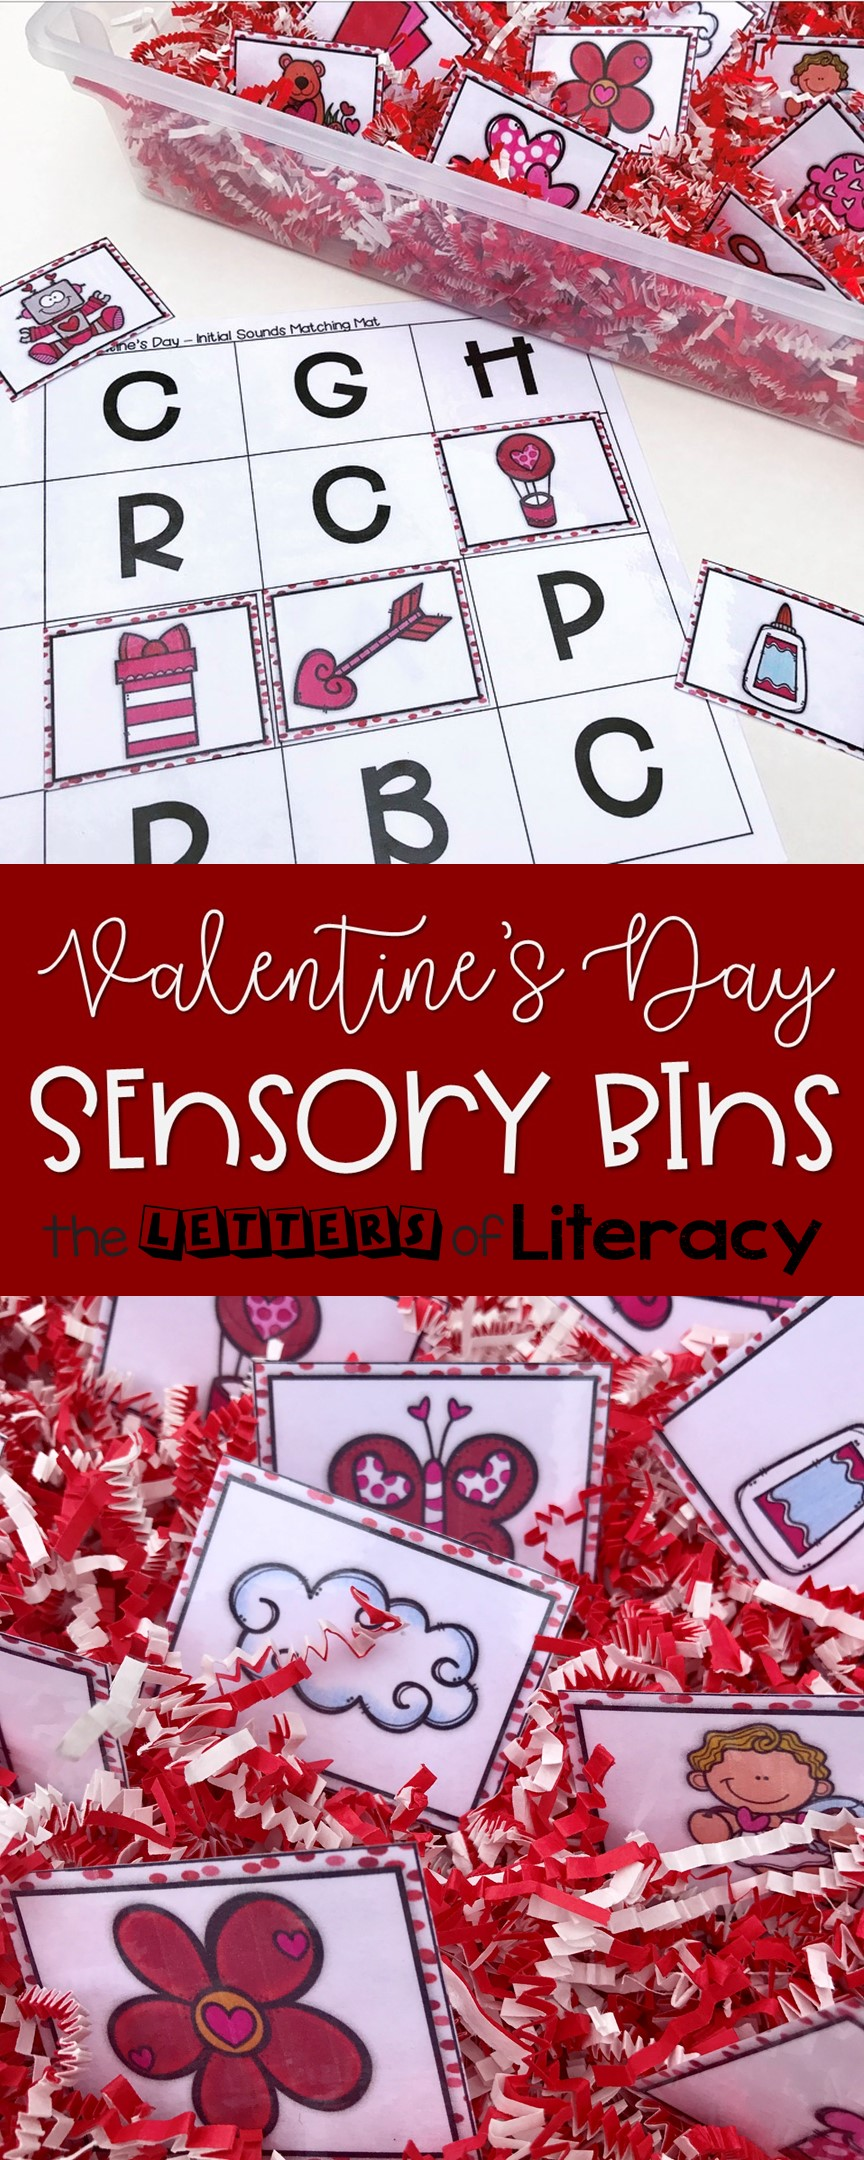 These Valentine's Day Sensory Bins are a great way to have hands-on, interactive fun with literacy skills this Valentine's season with Kindergarten and 1st Grade students!